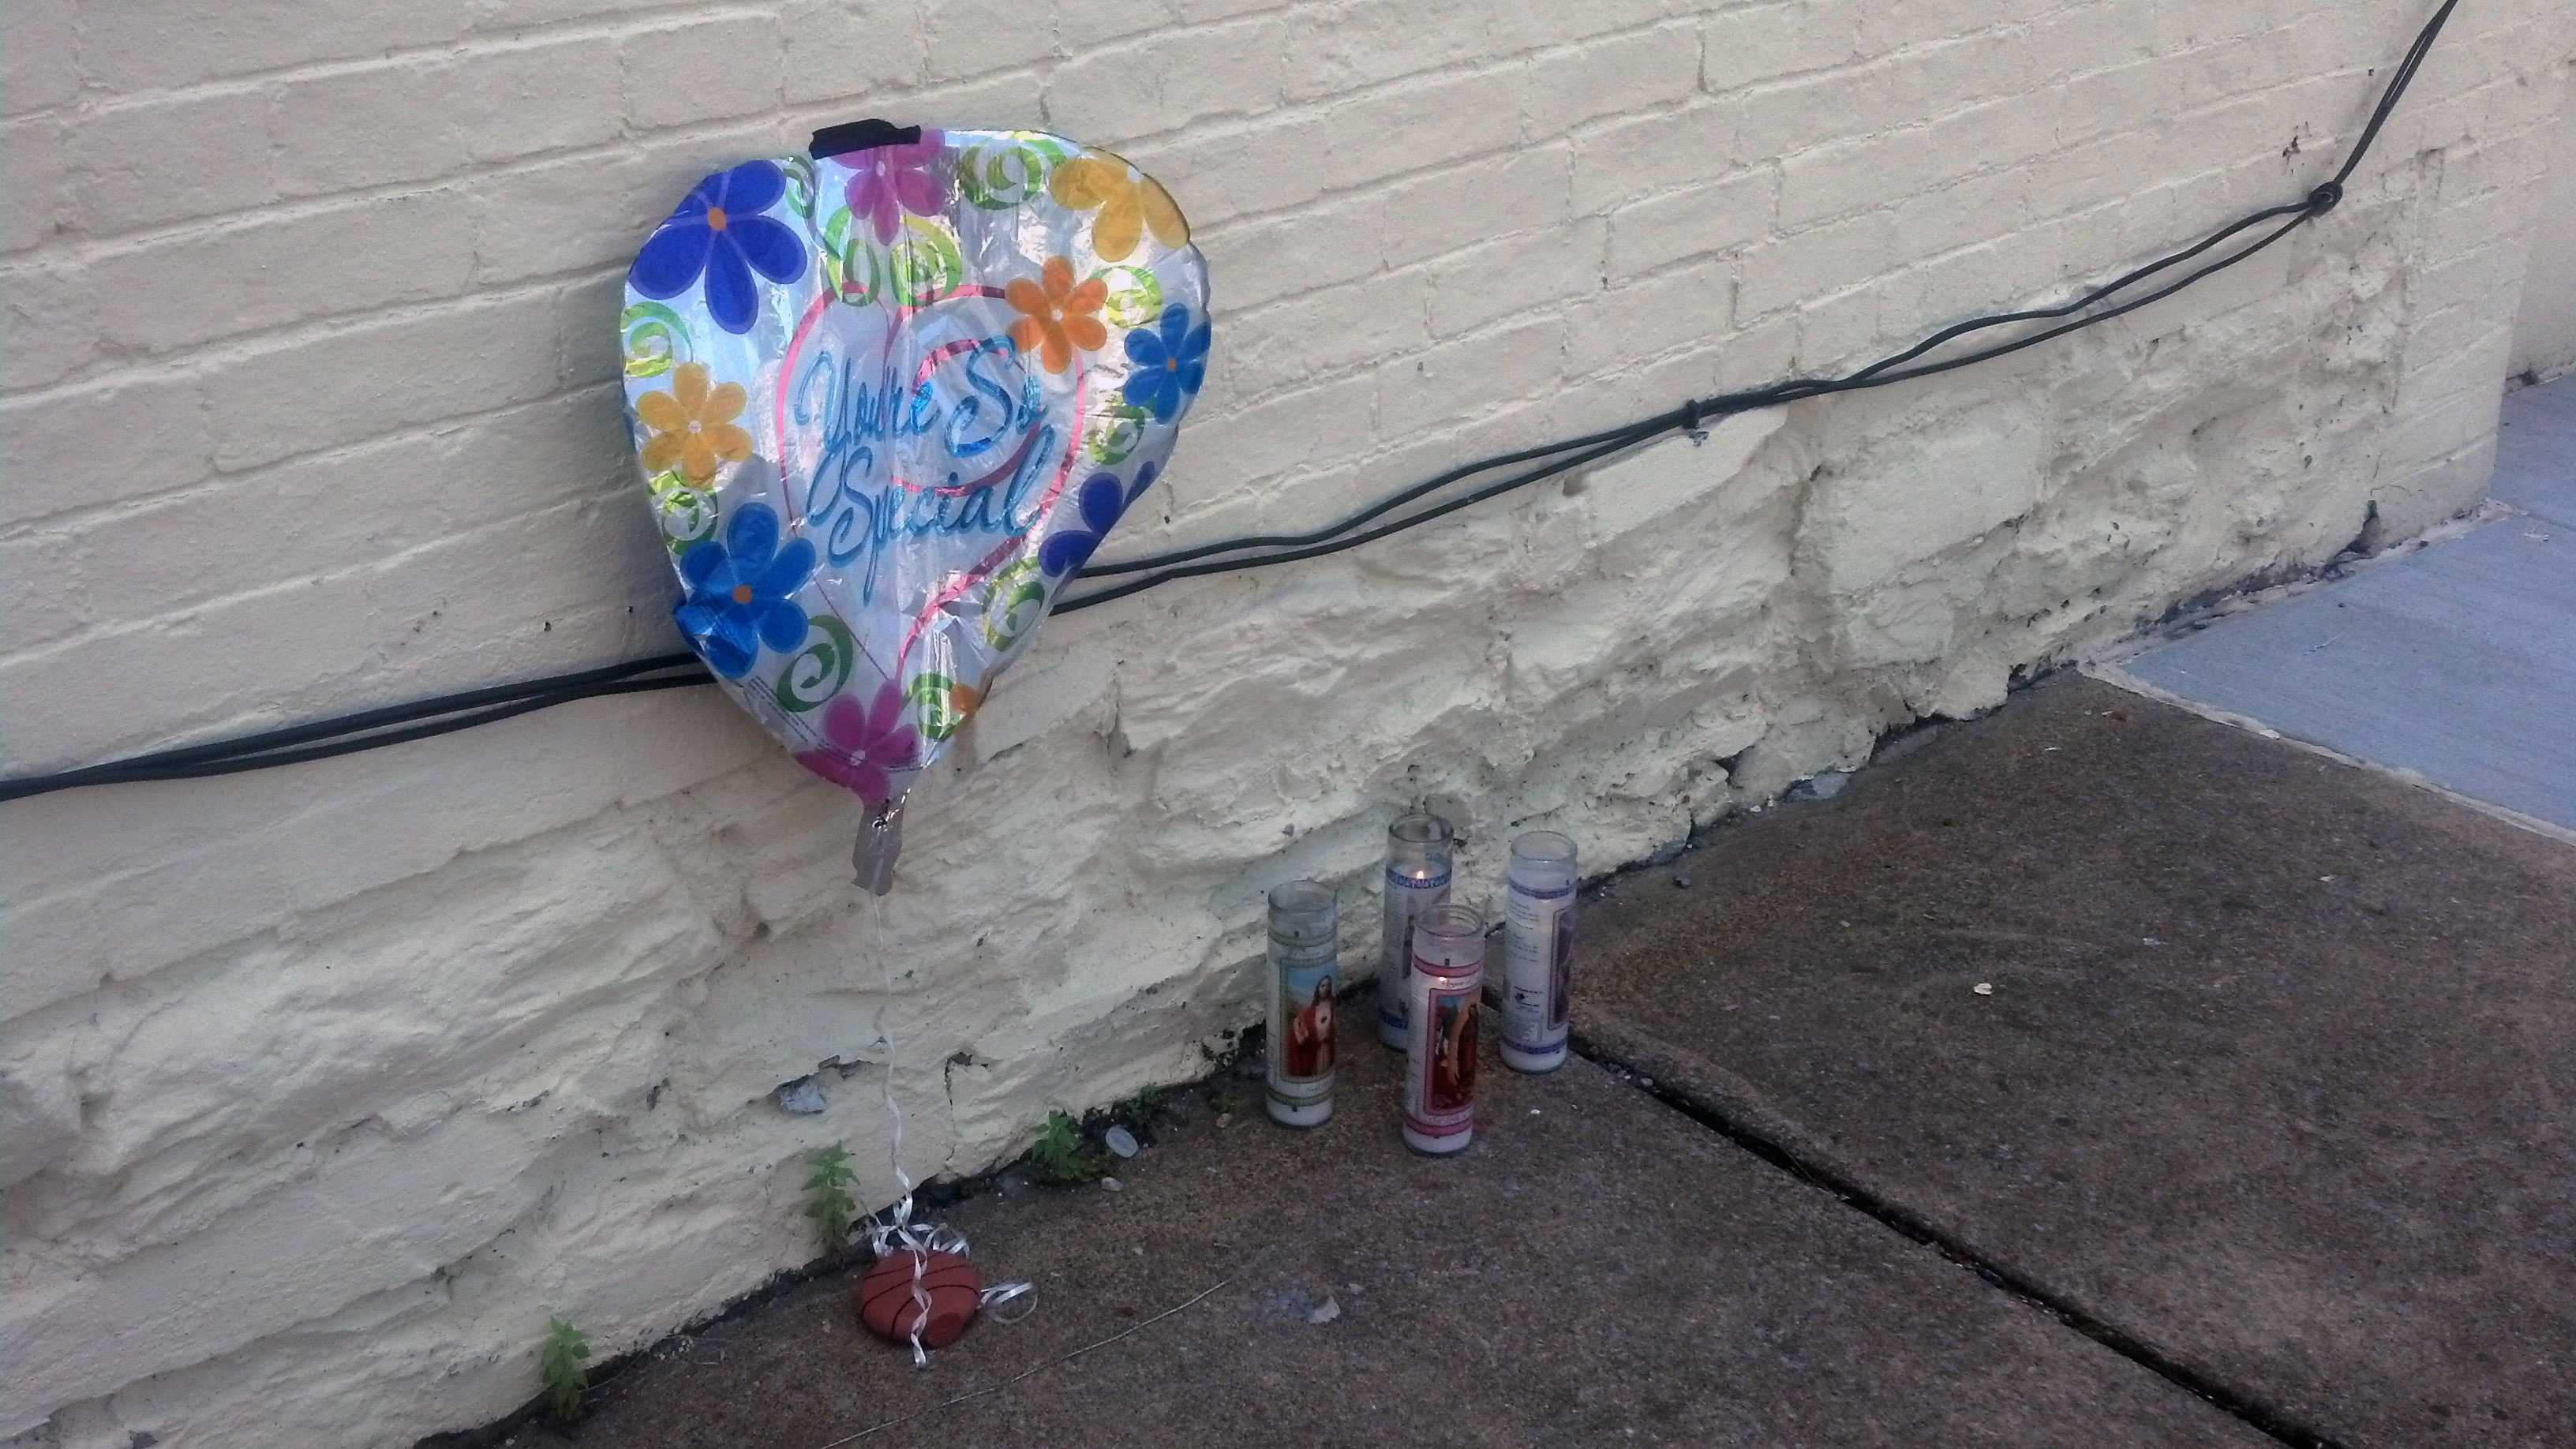 This is a memorial to the shooting victim.